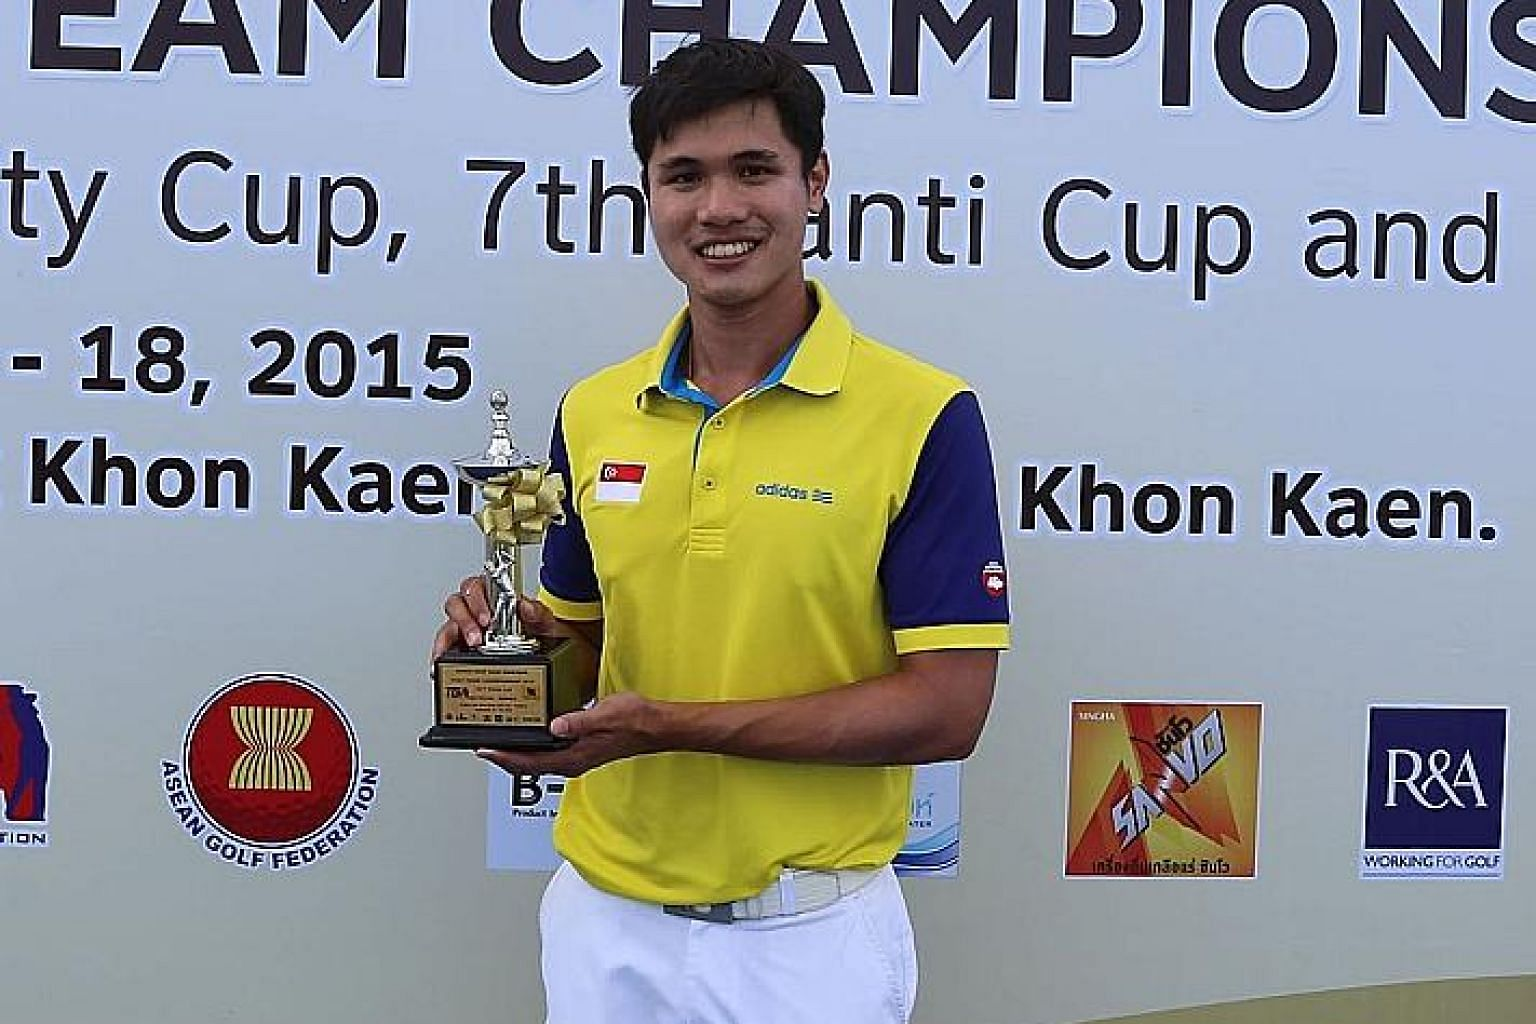 Gregory Foo's 281 total secured the Putra Cup individual crown by a four-shot margin. Thailand clinched their 17th team title in the 55th edition of the annual tournament.